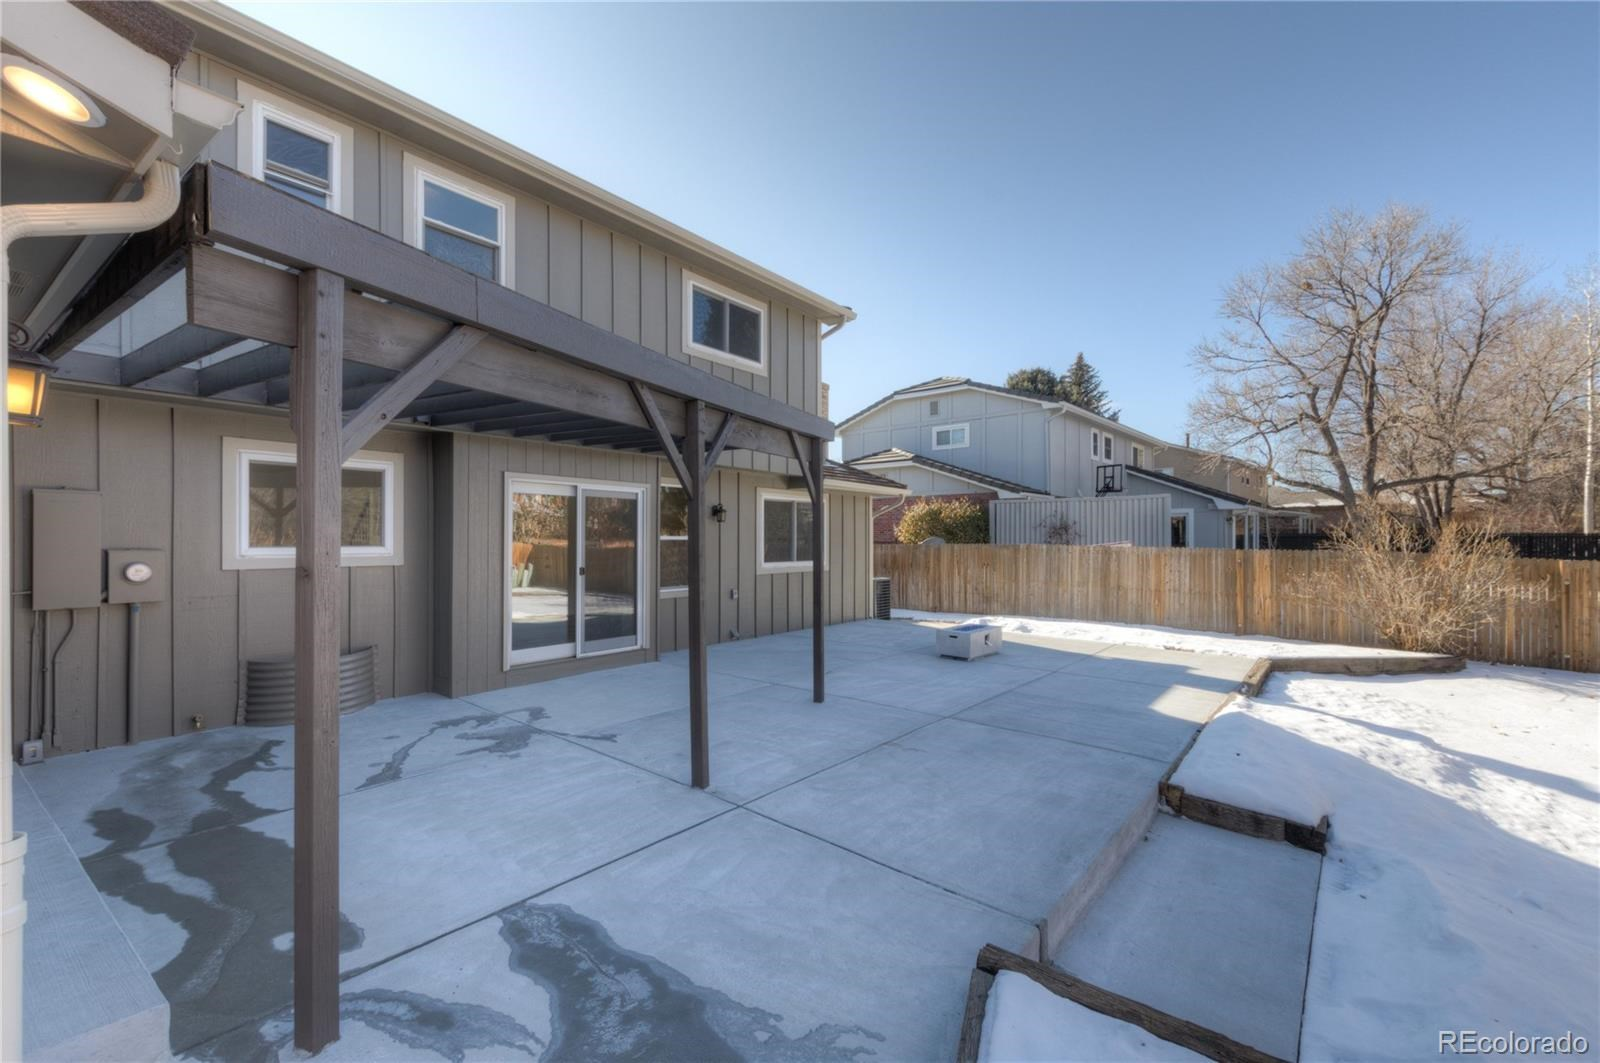 MLS# 4870124 - 36 - 4075 S Niagara Way, Denver, CO 80237